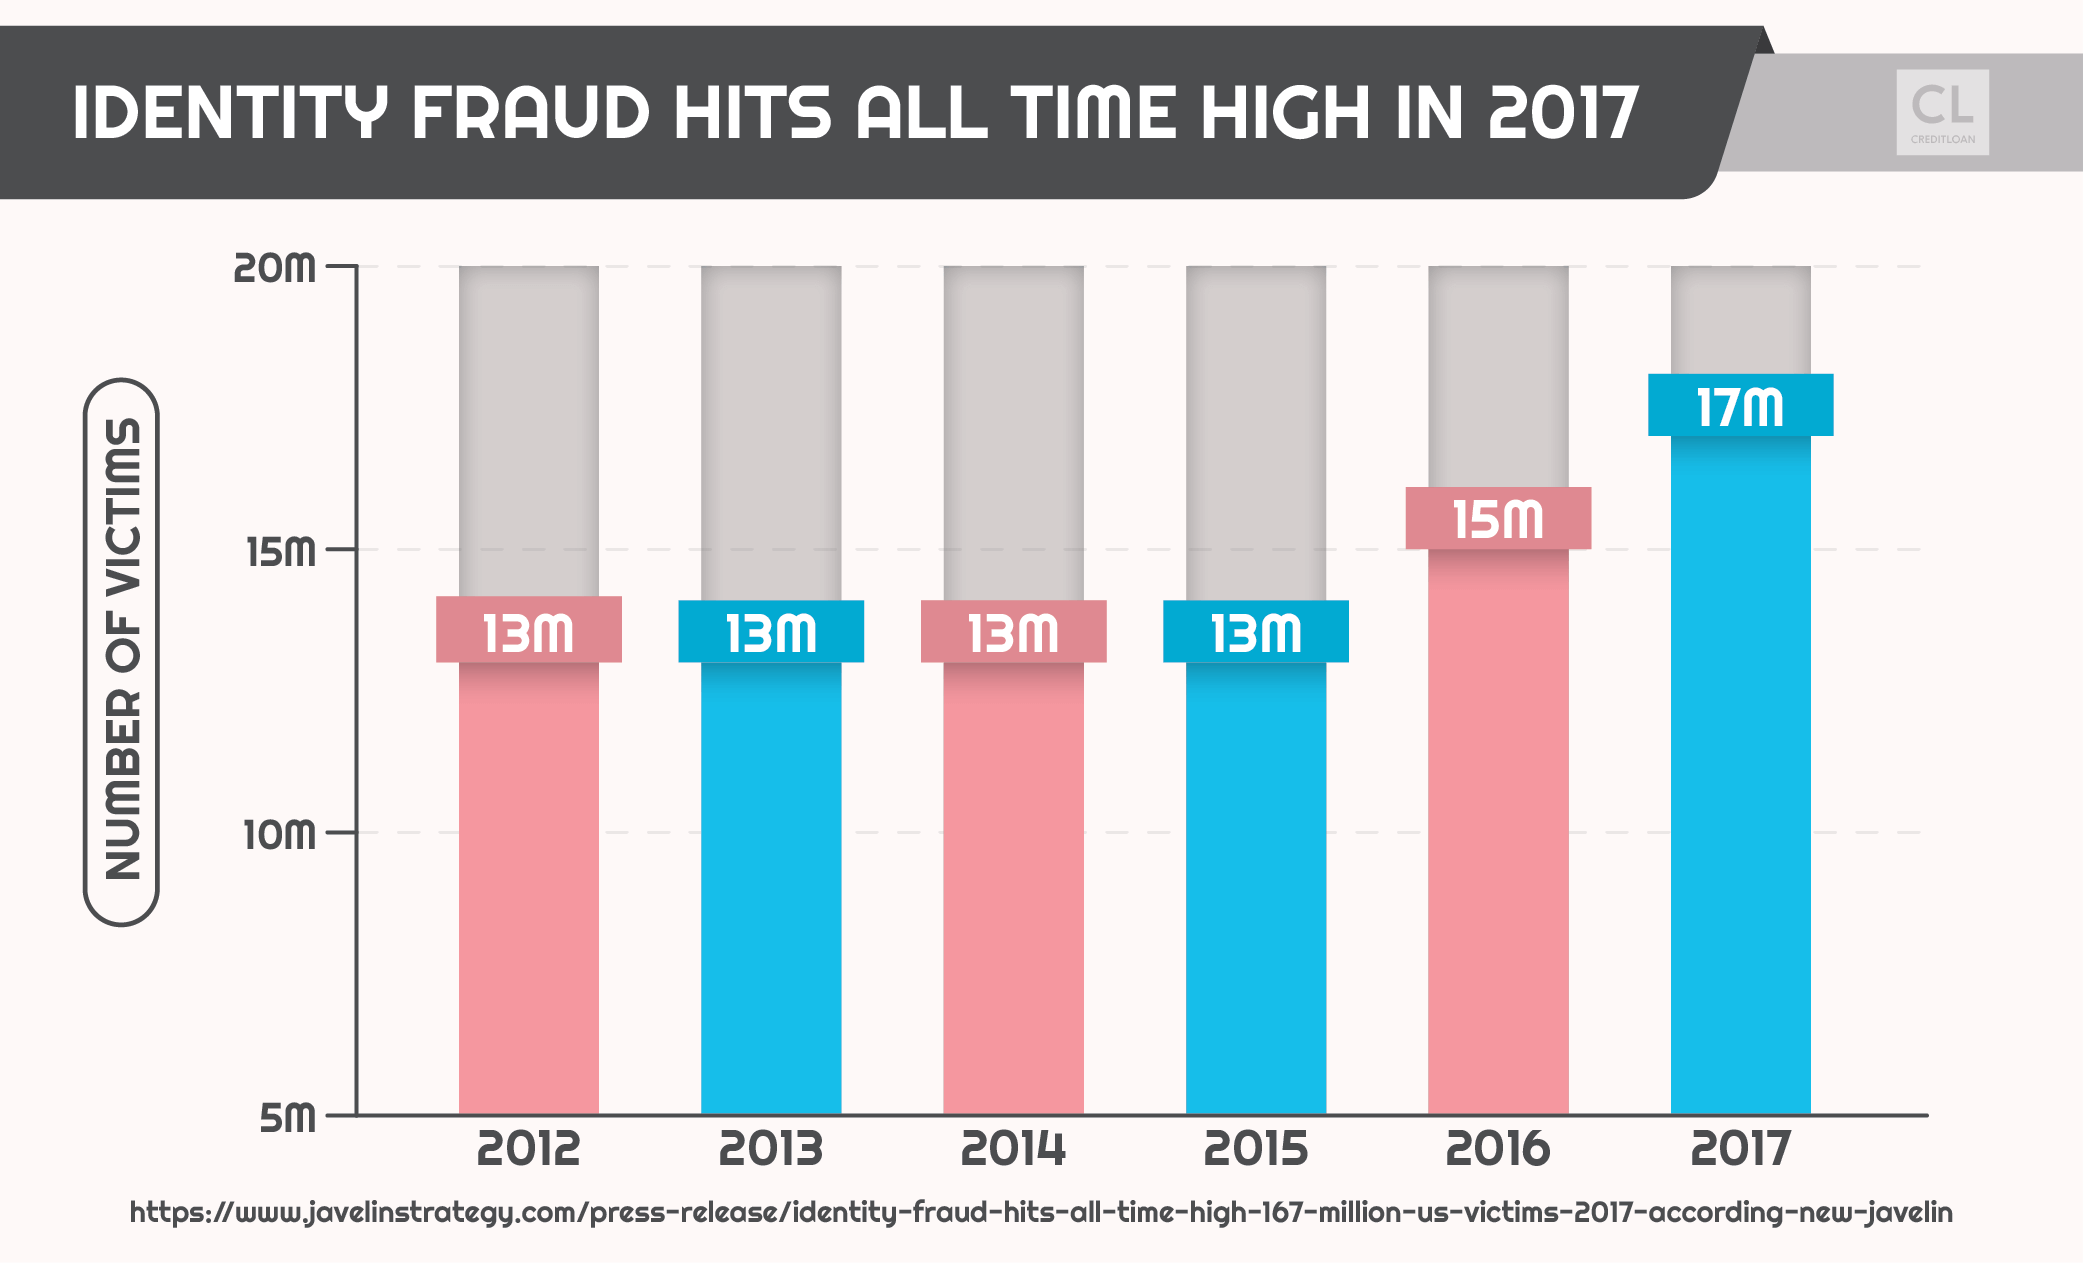 Identity Fraud Hits All Time High in 2017